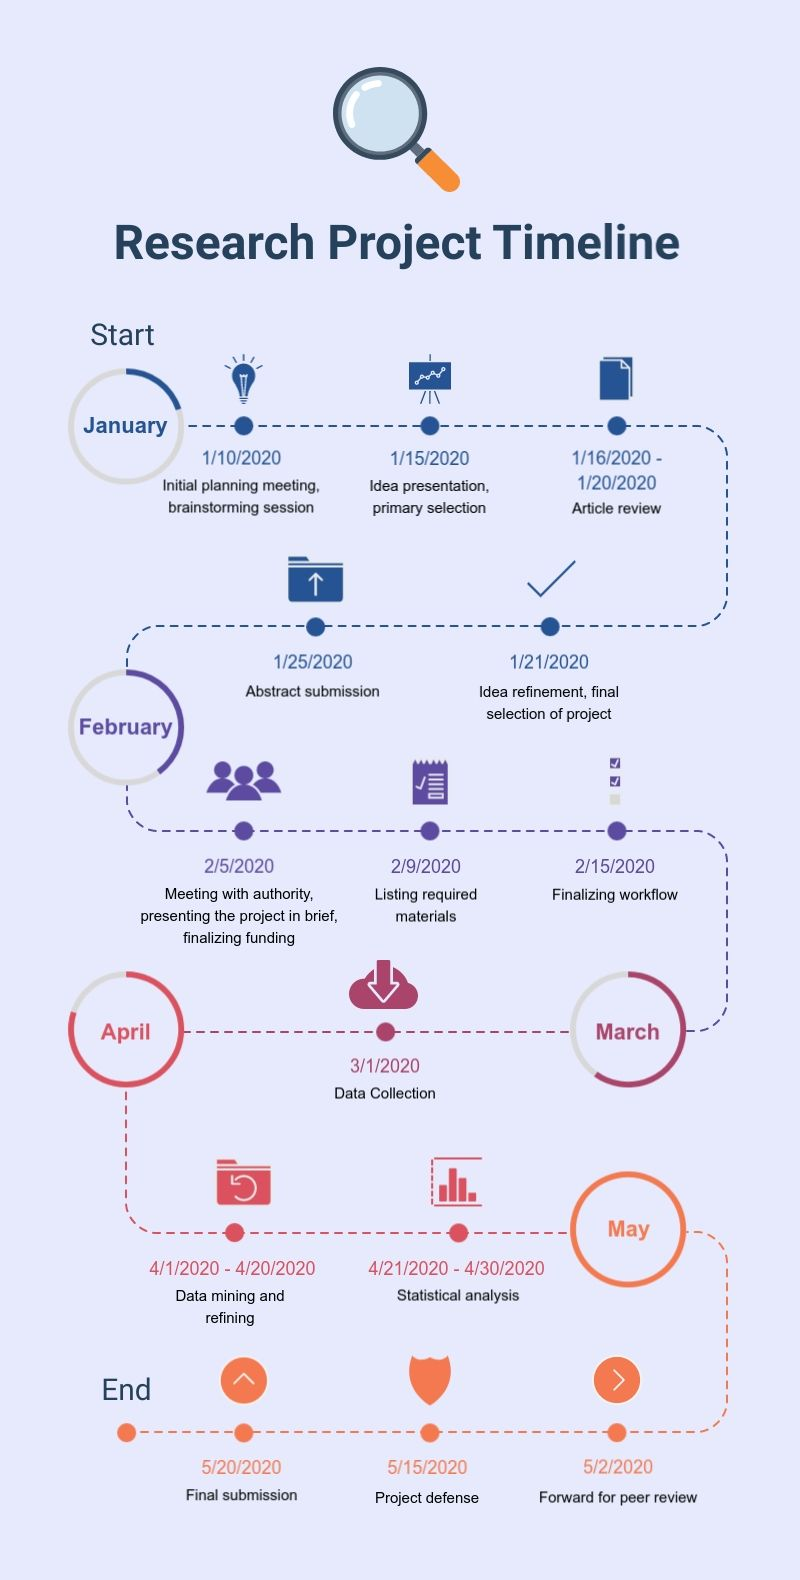 research project timeline infographic in 2020 template design